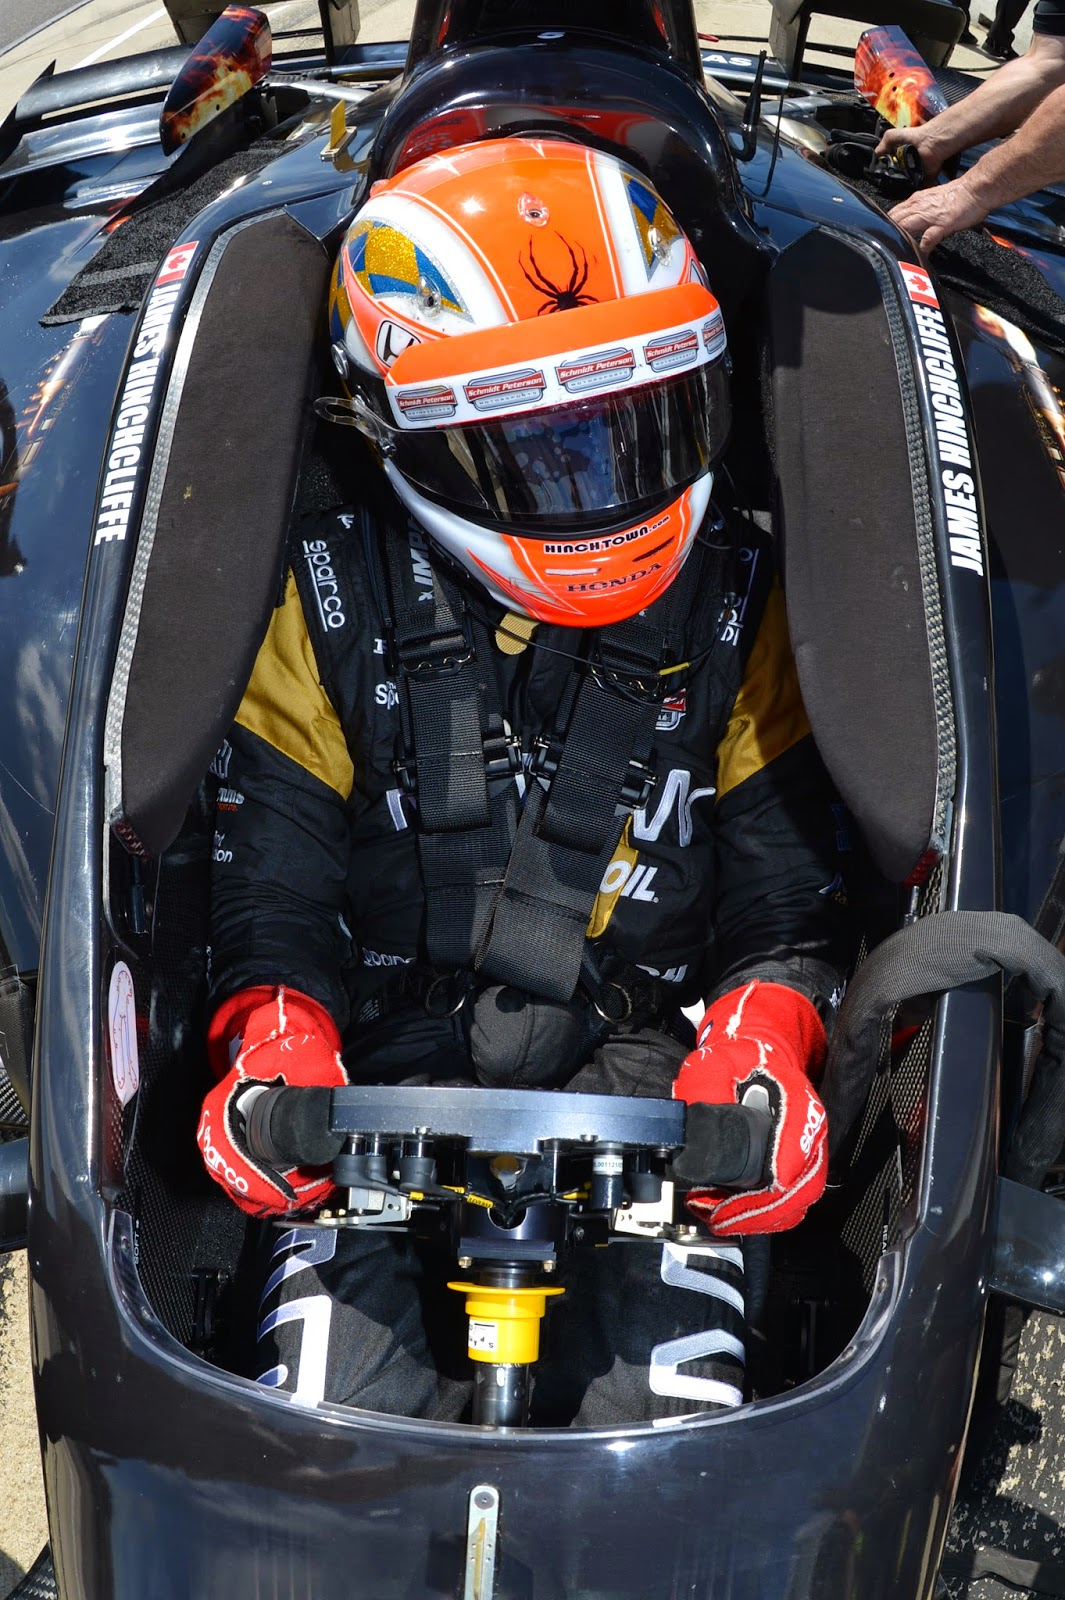 James Hinchcliffe is strapped into his Schmidt Peterson Motorsports Honda on pit lane during Tuesday's Open Test sessions at Barber Motorsports Park